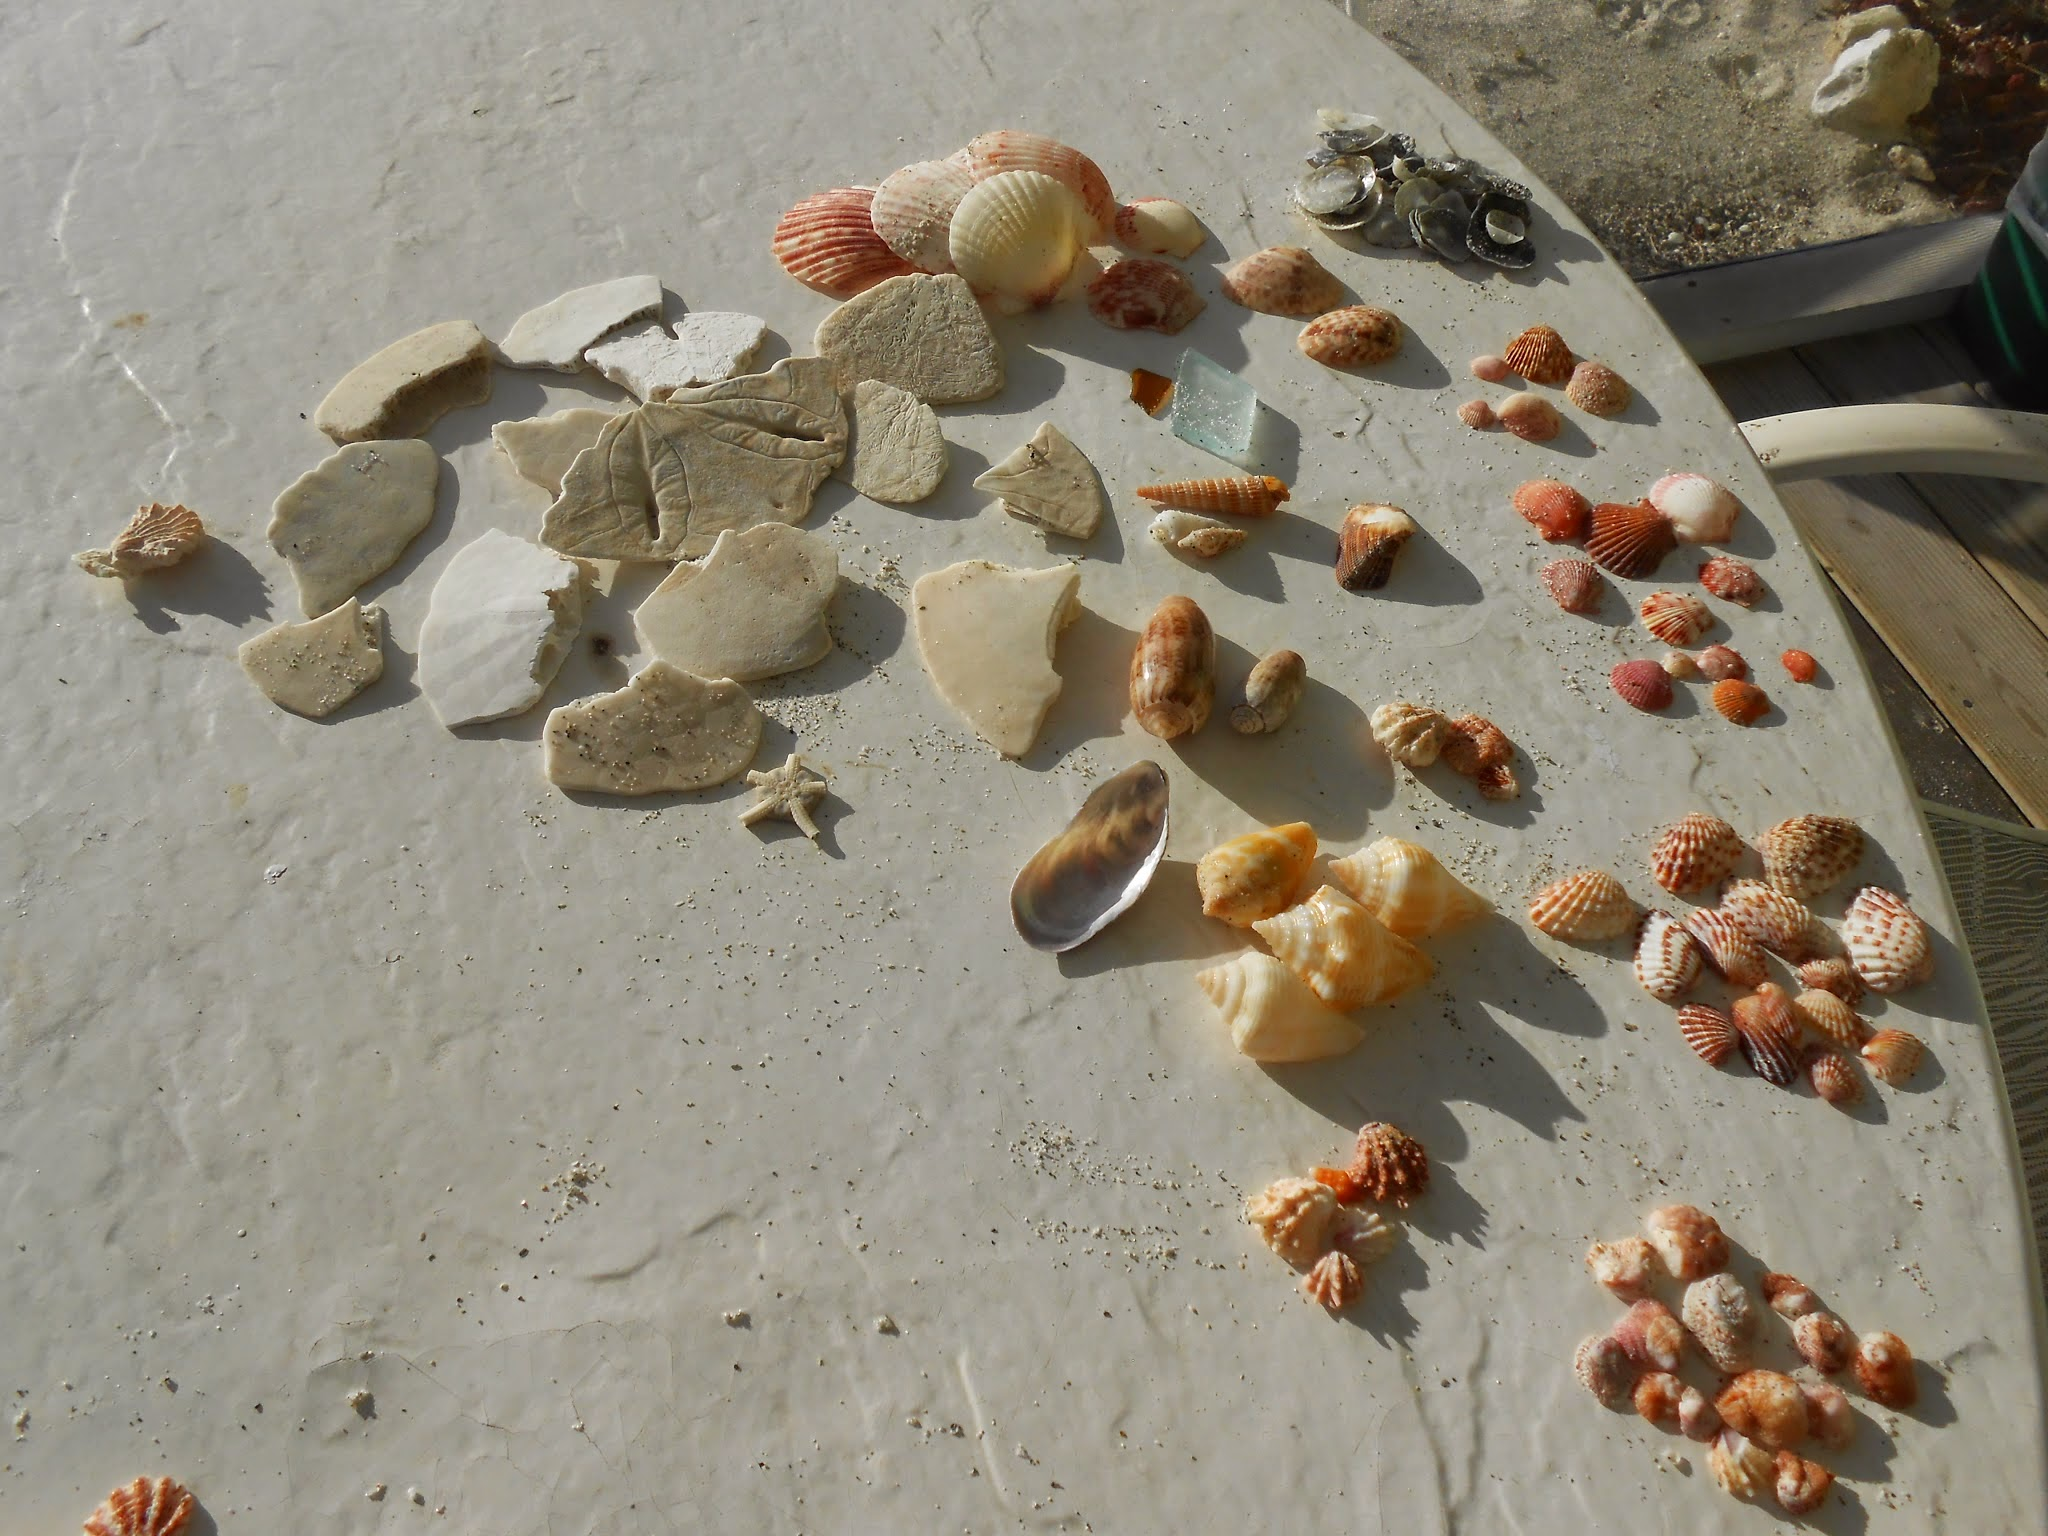 Shells and bits of sand dollars I found at Blind Pass, after only an hour of beachcombing.